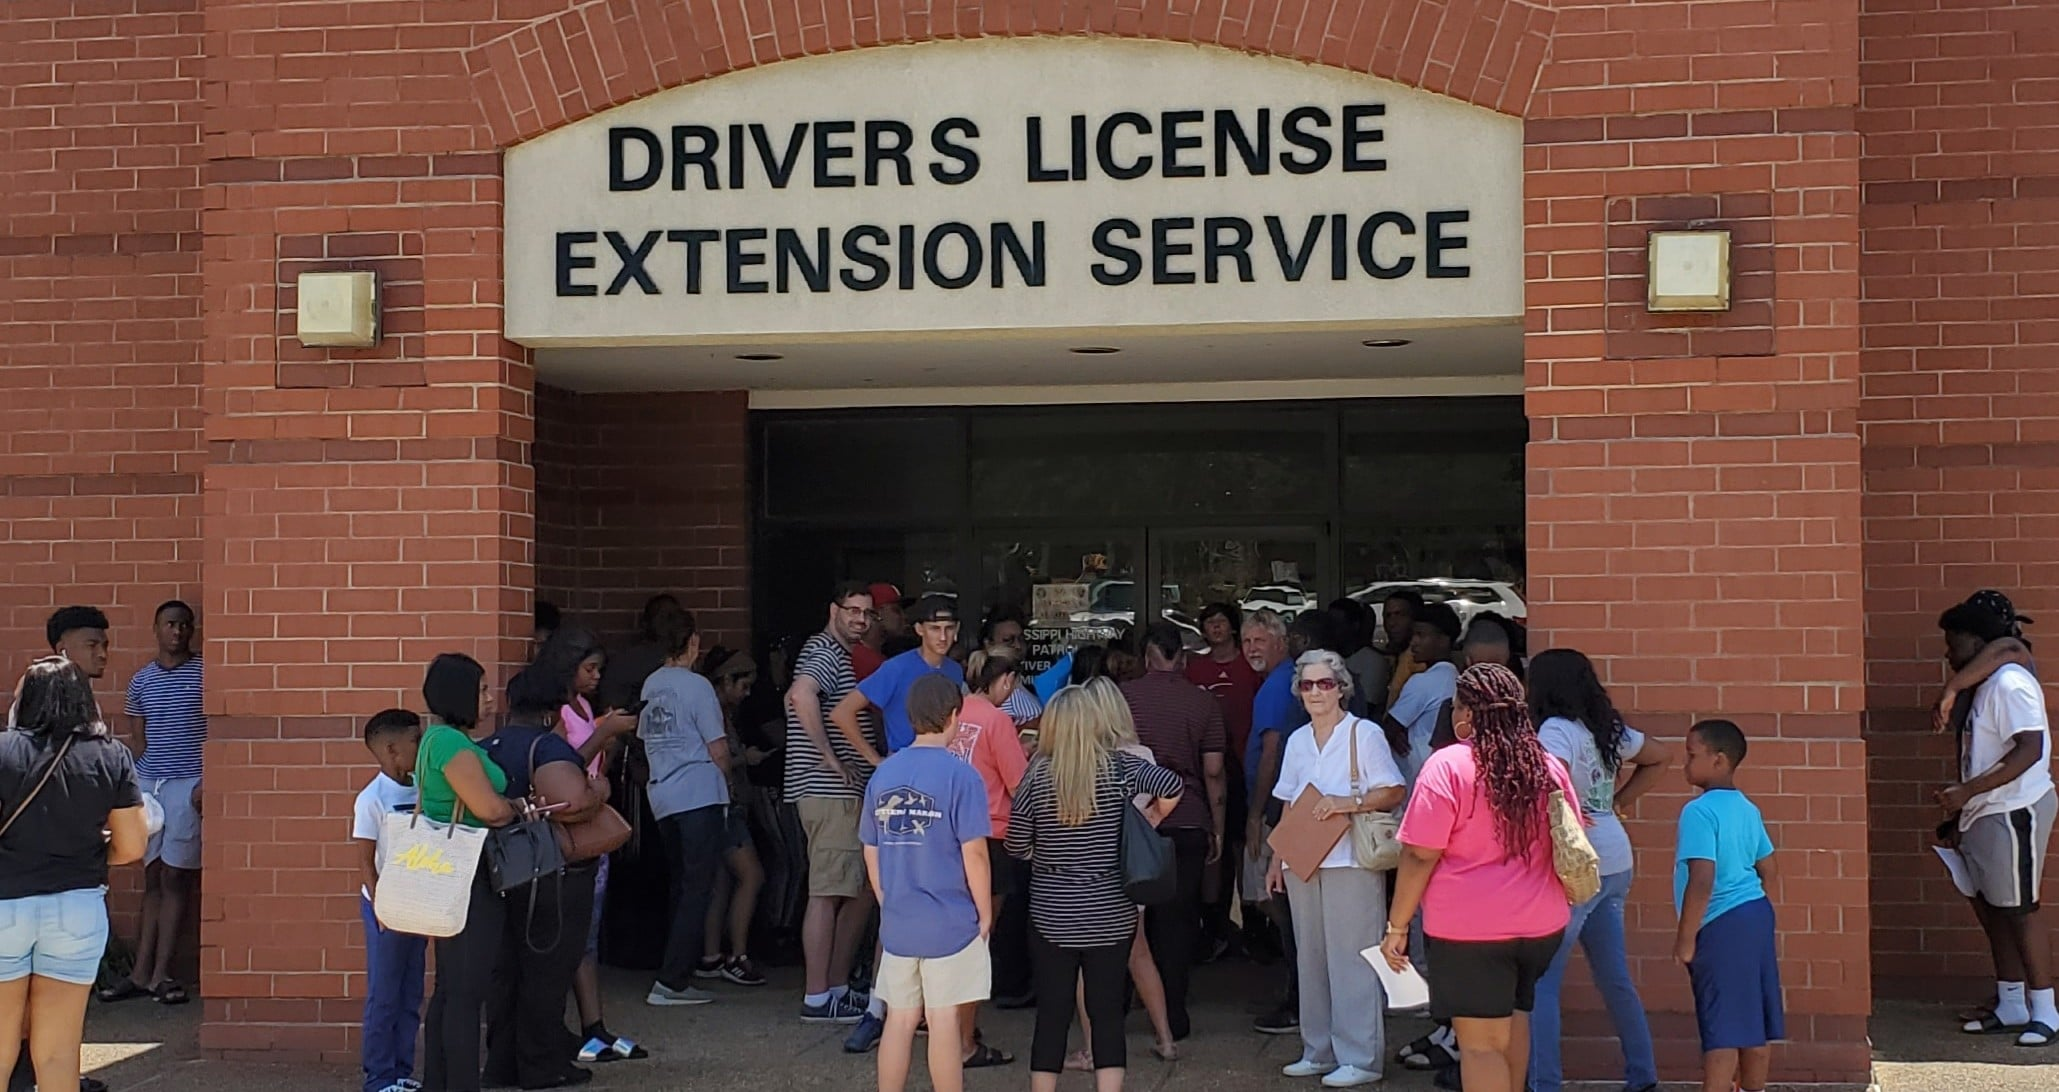 All Mississippi Driver's License Stations closed today